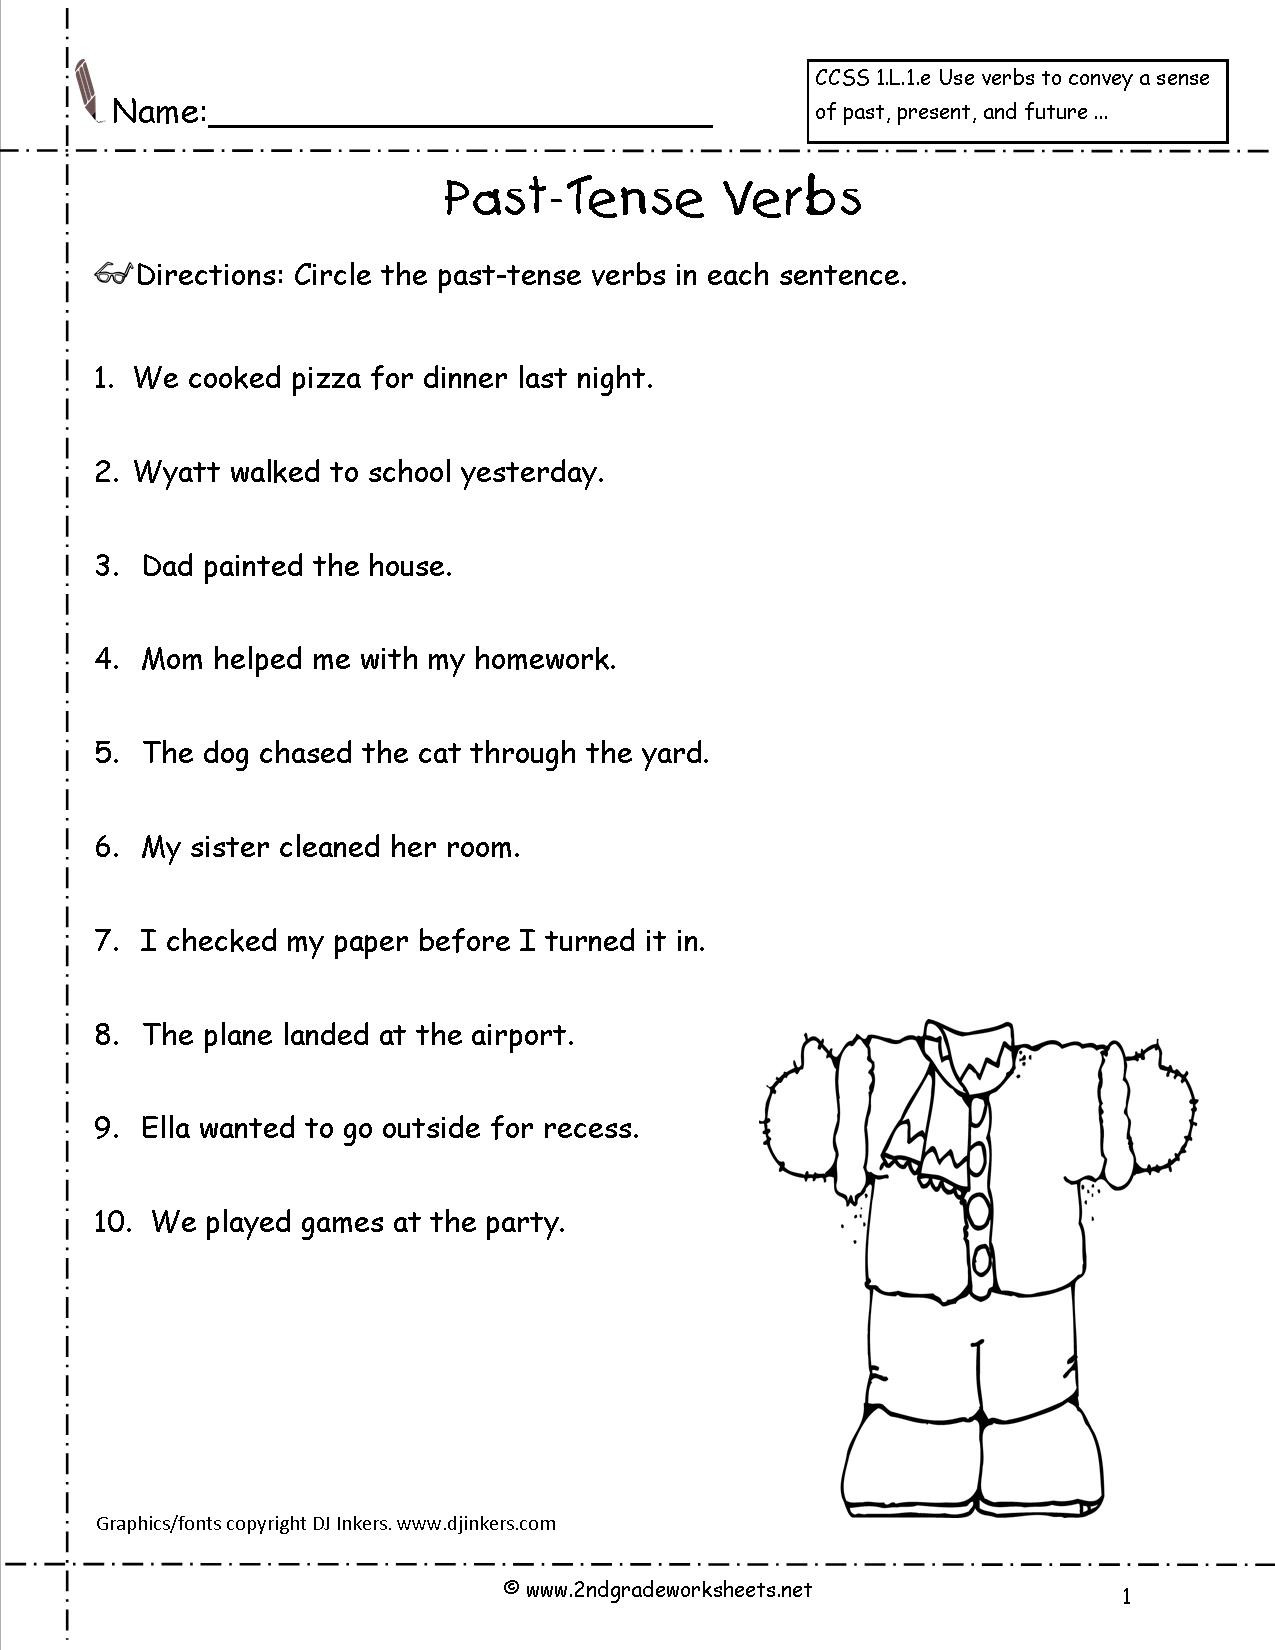 Tenses Worksheets for Grade 5 Simple Past Tense Worksheets Grade 3